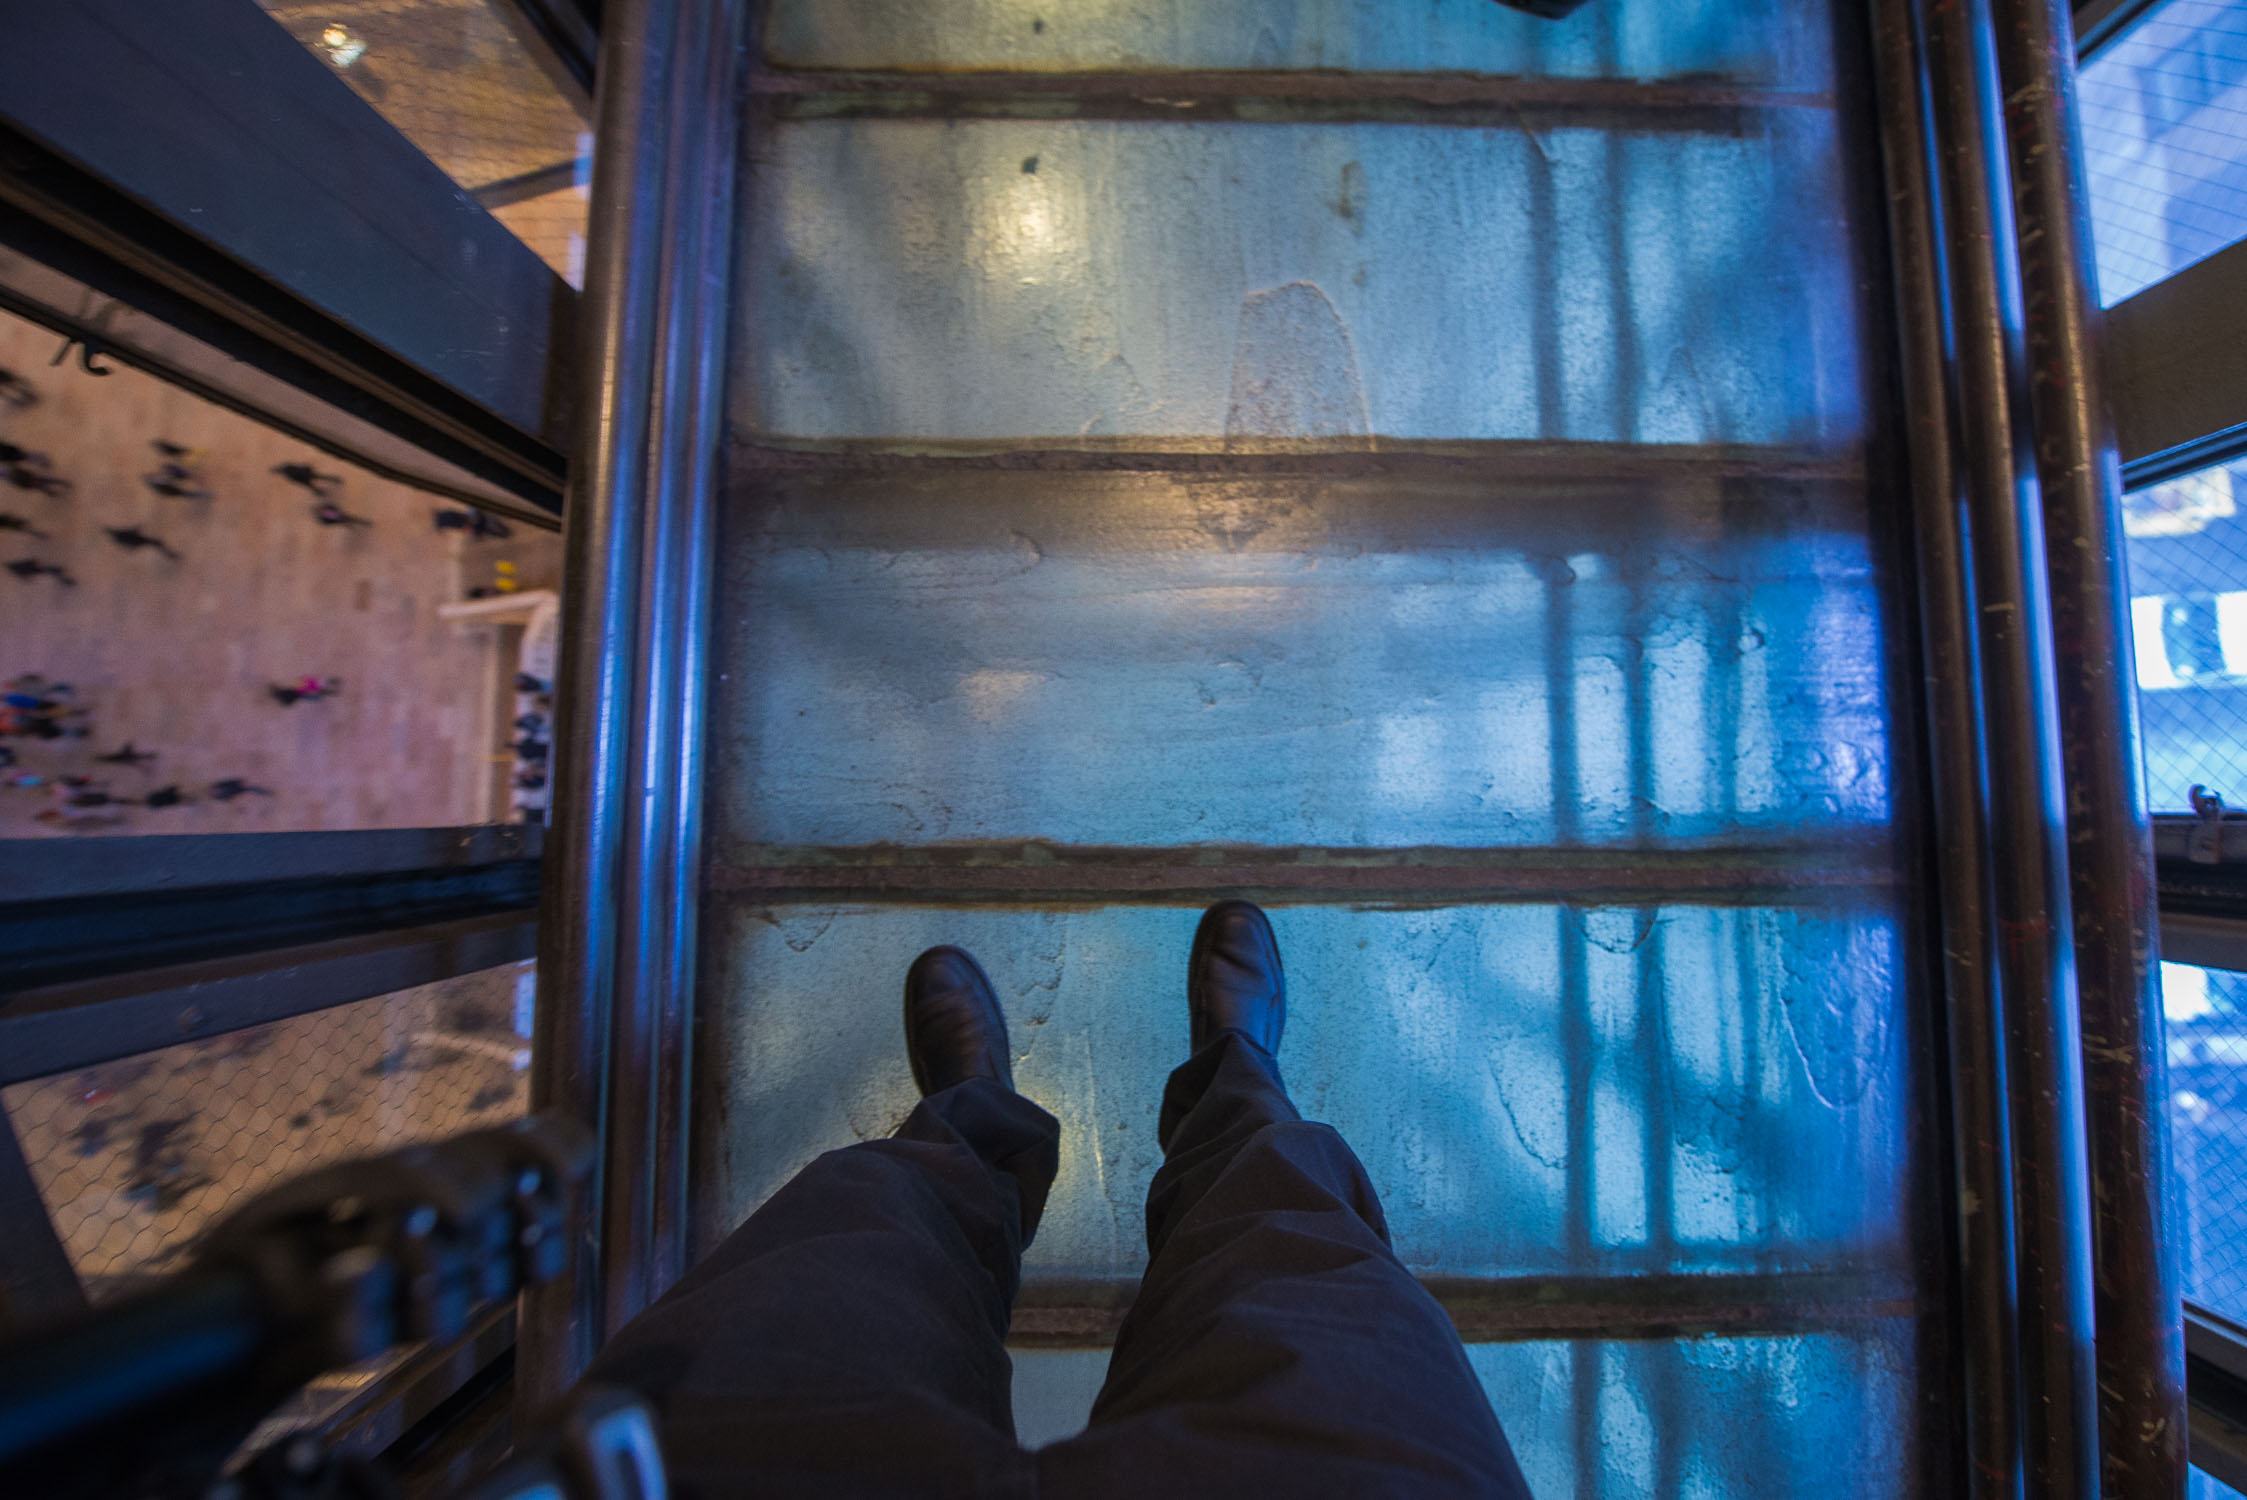 The famous glass catwalk.